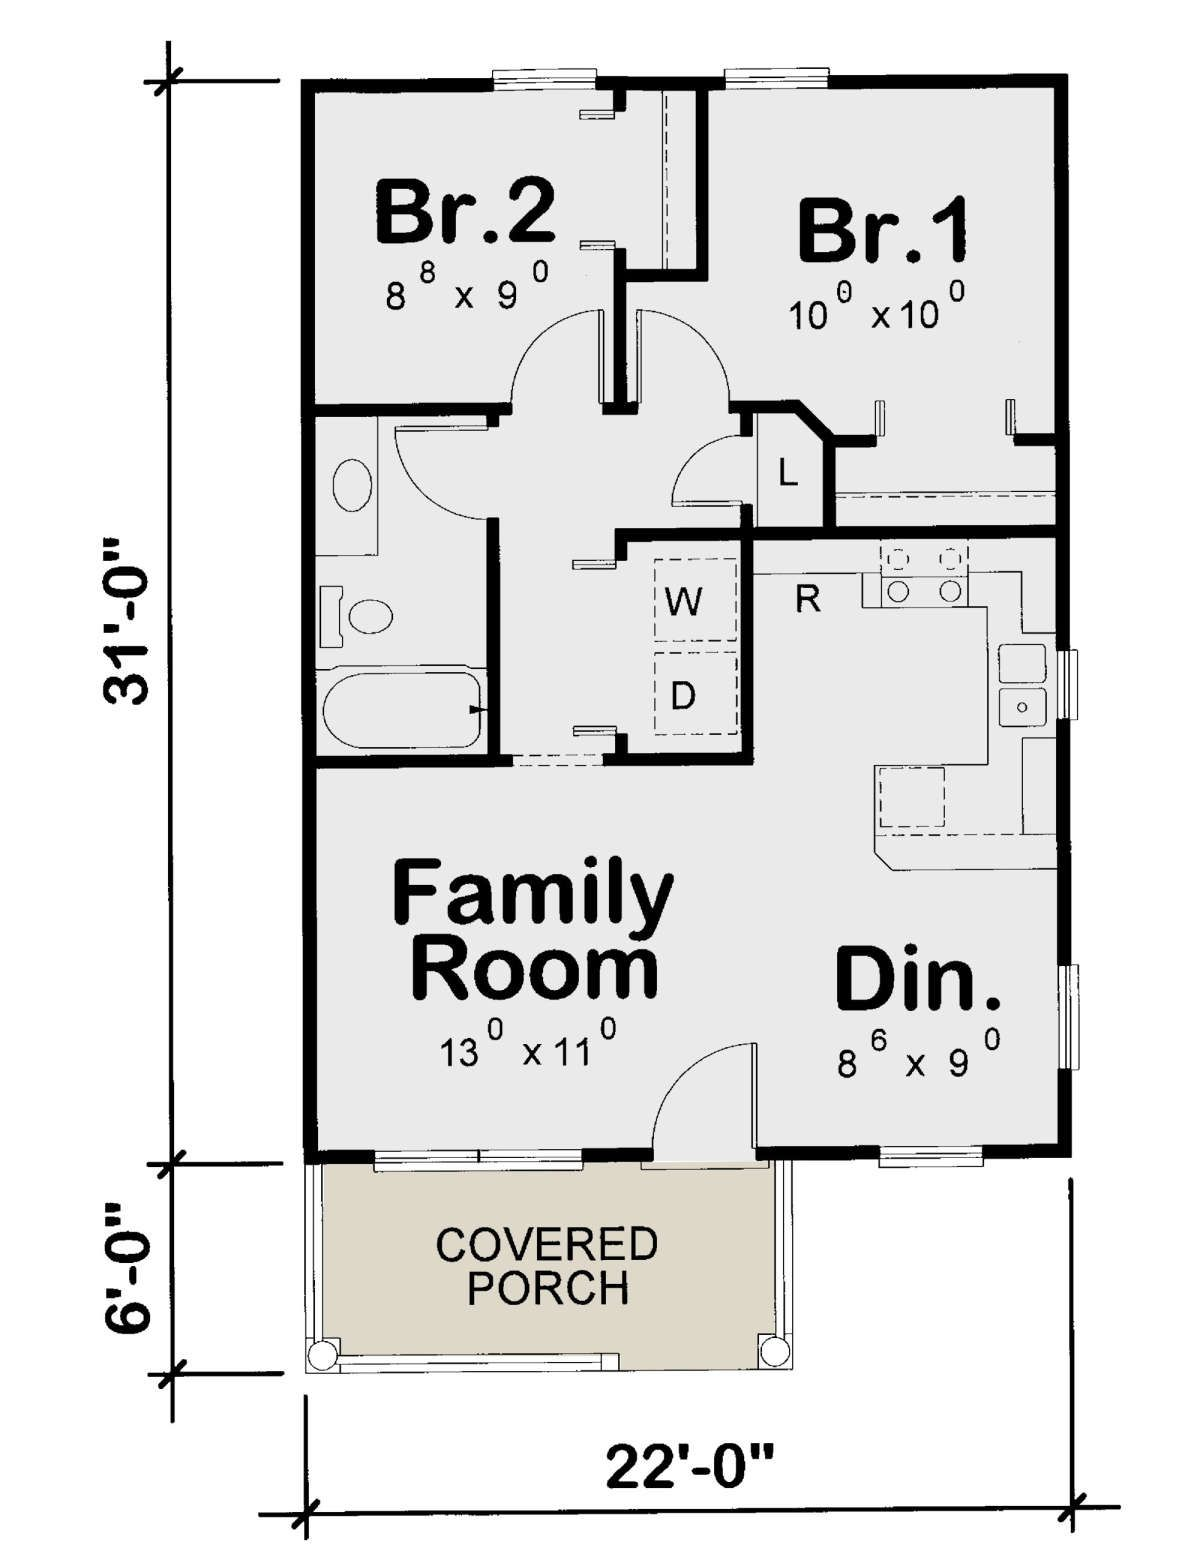 House Plan 402 01611 Small Plan 682 Square Feet 2 Bedrooms 1 Bathroom In 2020 Garage Apartment Floor Plans Small Bathroom Floor Plans House Plans